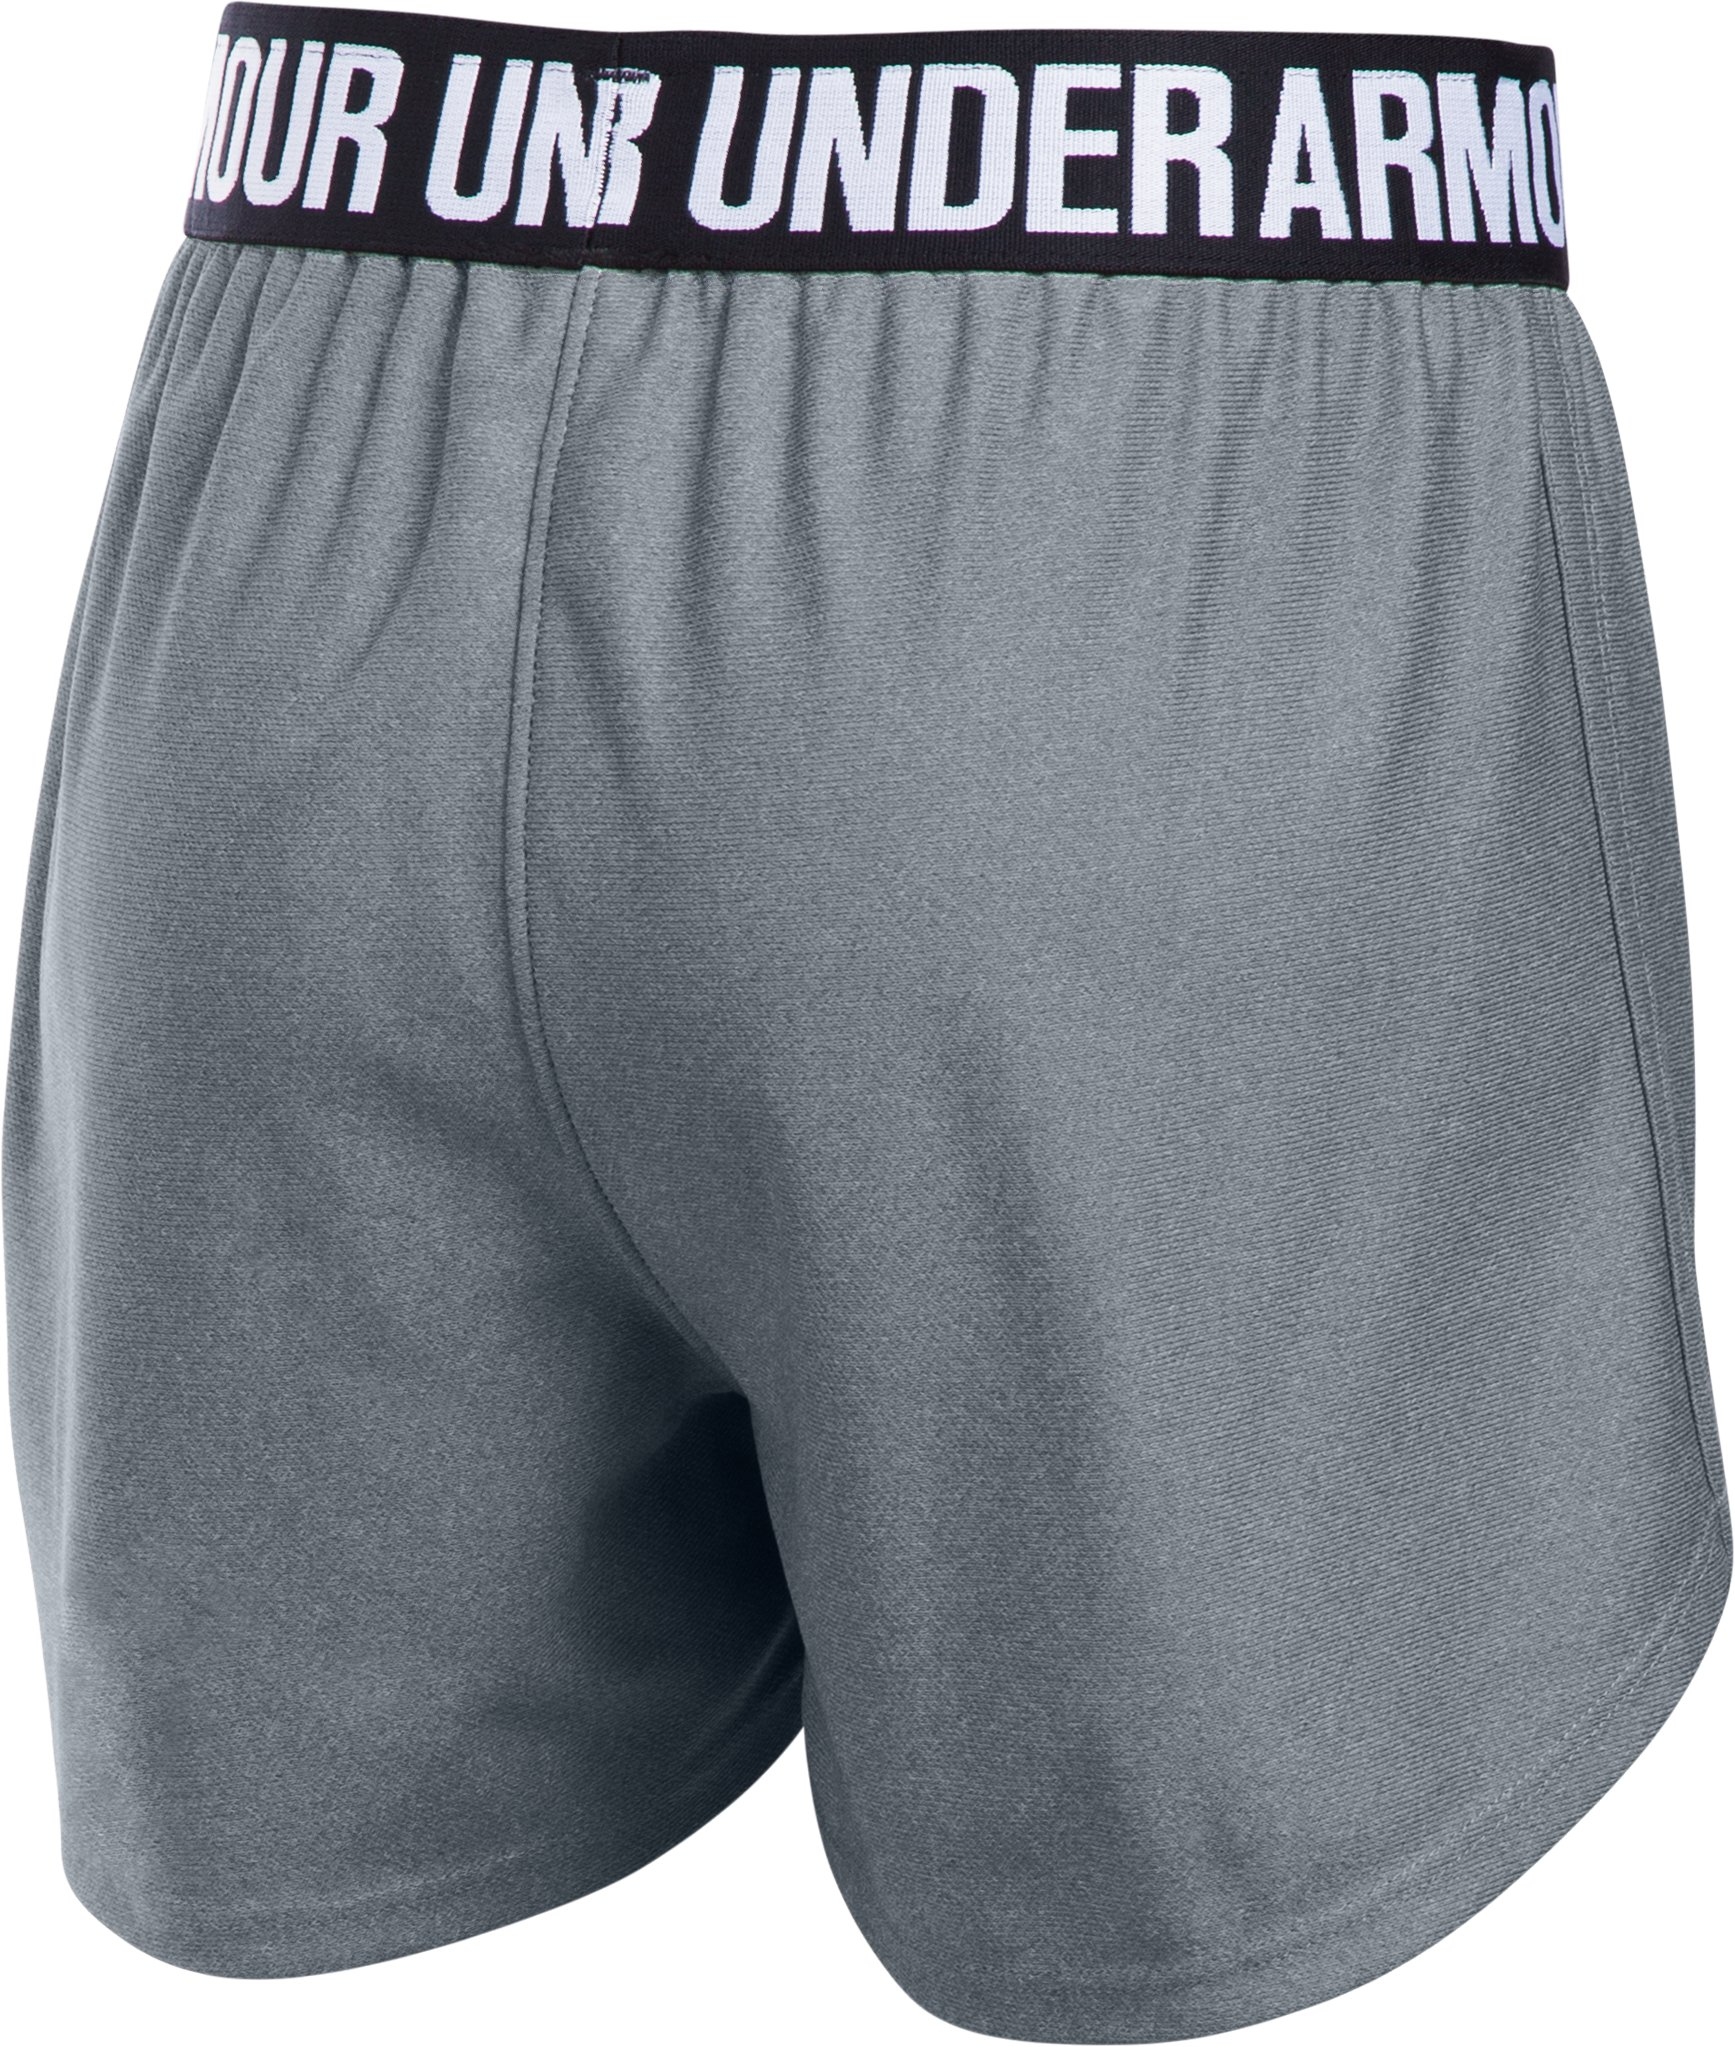 Girls' UA Play Up Shorts, Steel,